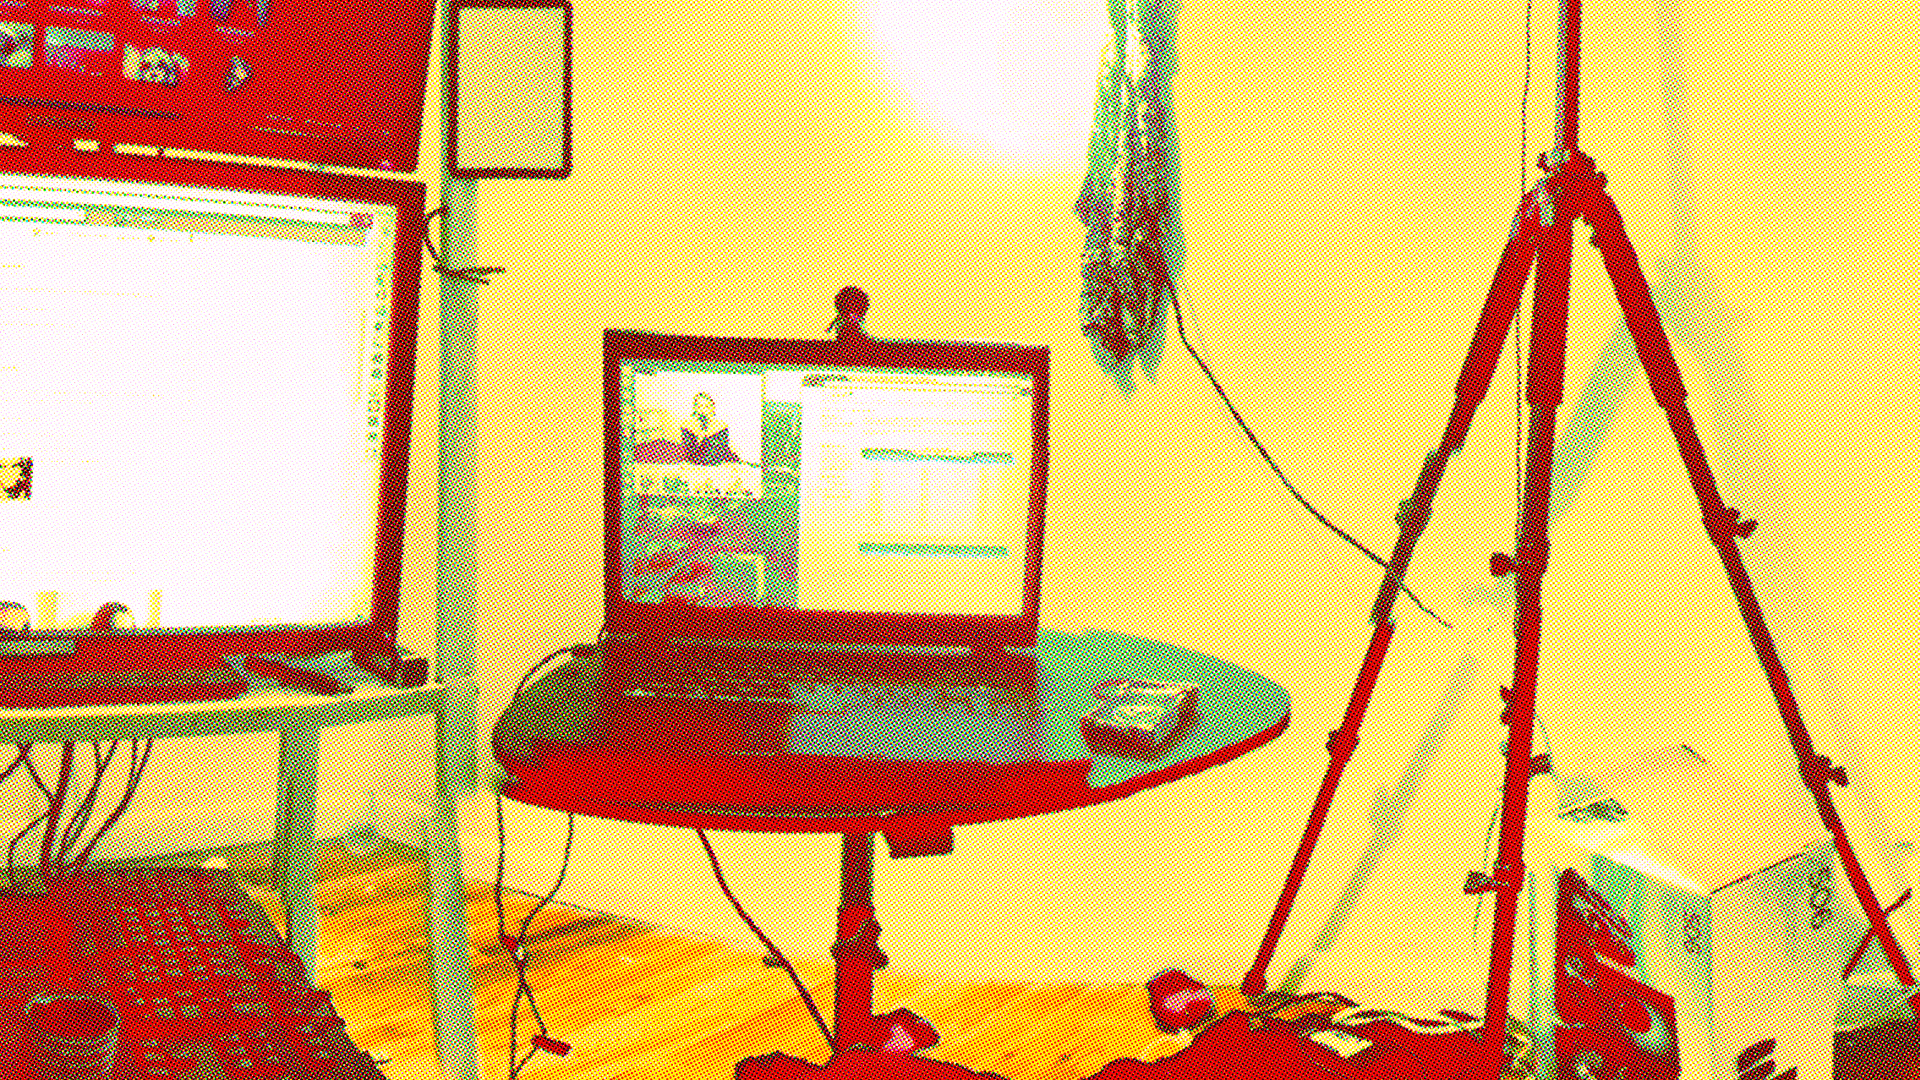 Cam girl studio. (Reddit)